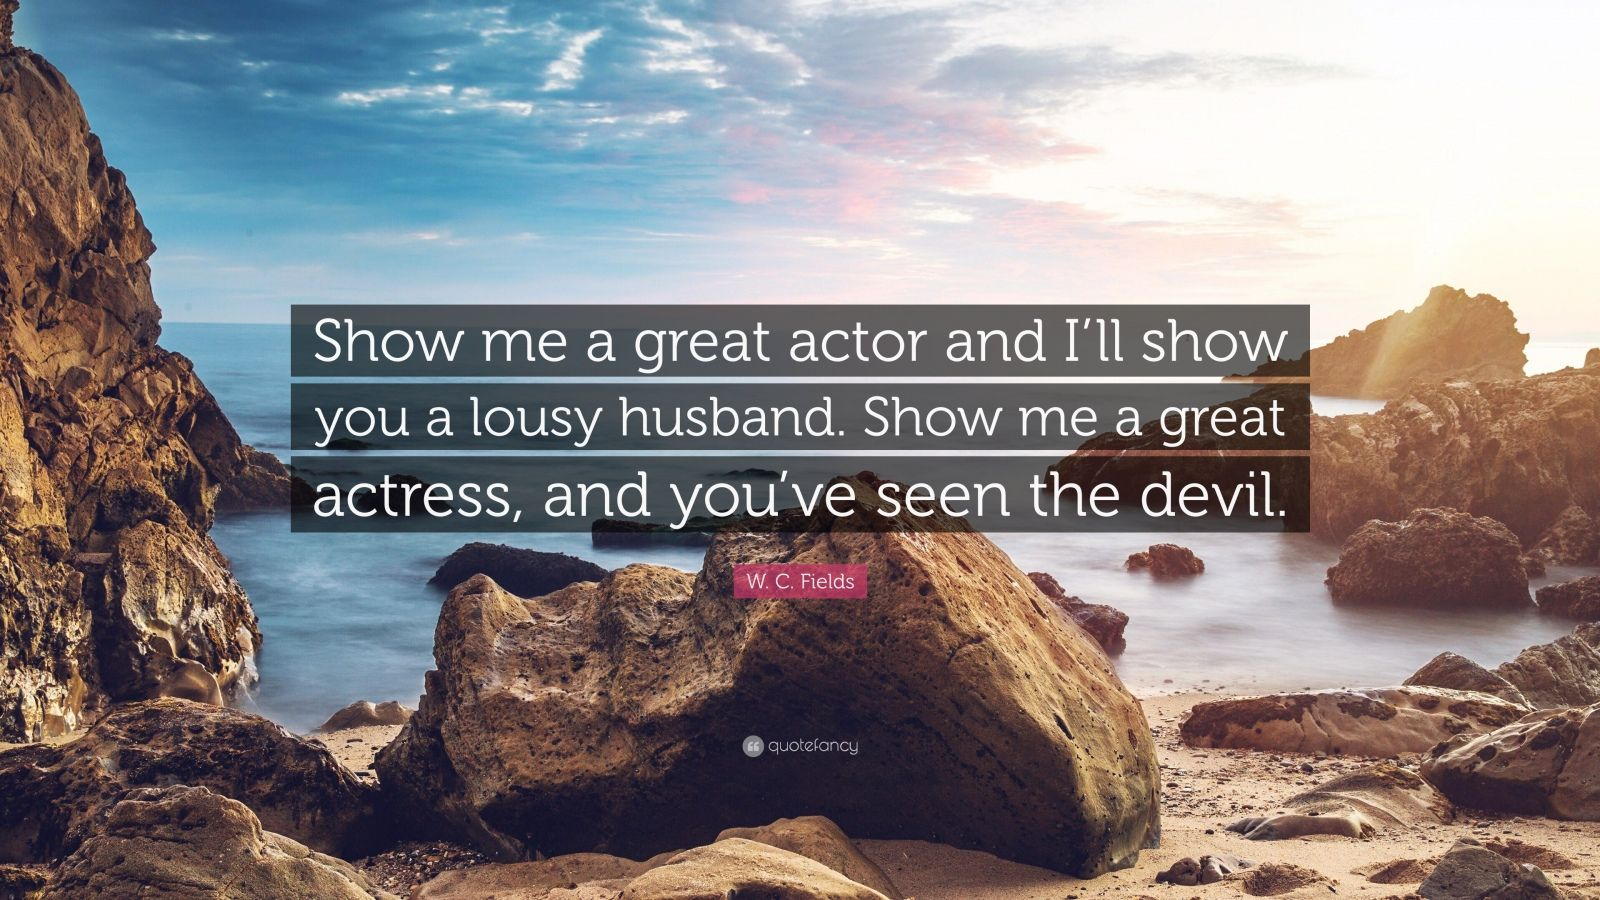 """W. C. Fields Quote: """"Show me a great actor and I'll show you a lousy husband. Show me a great actress, and you've seen the devil."""""""